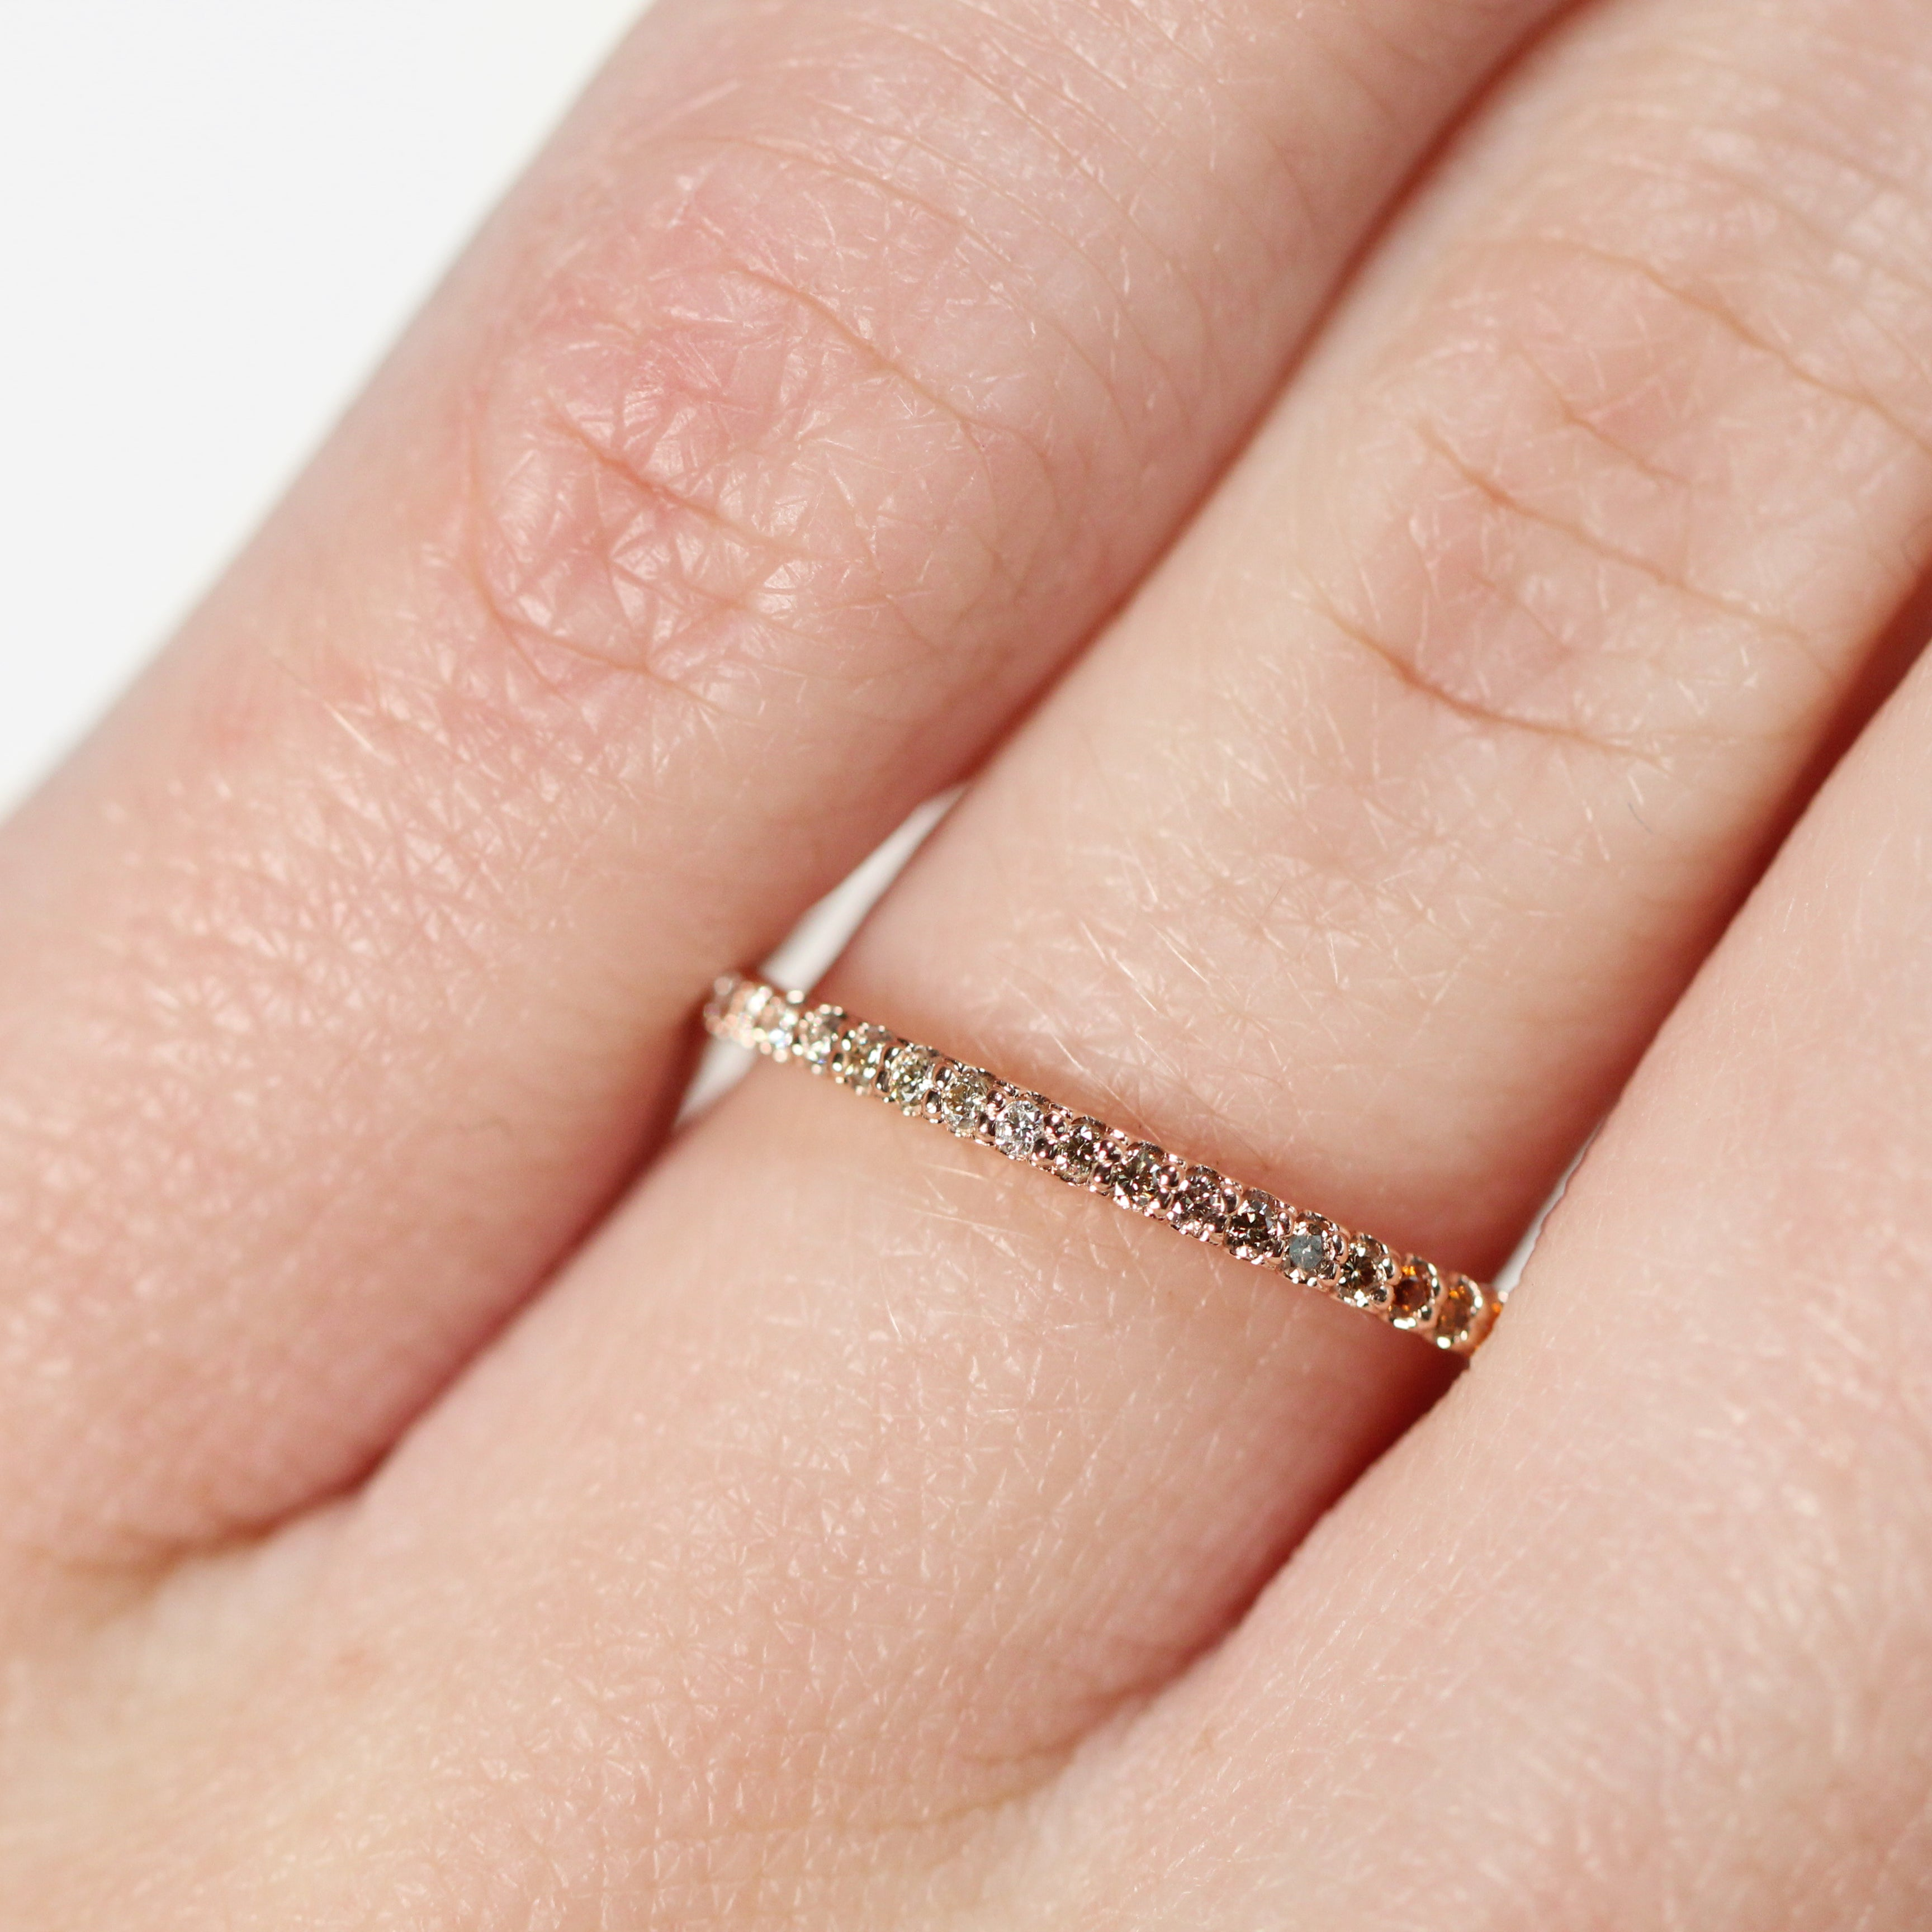 Constance - Pave set, minimal white to champagne to orange diamond wedding stacking band - Celestial Diamonds ® by Midwinter Co.